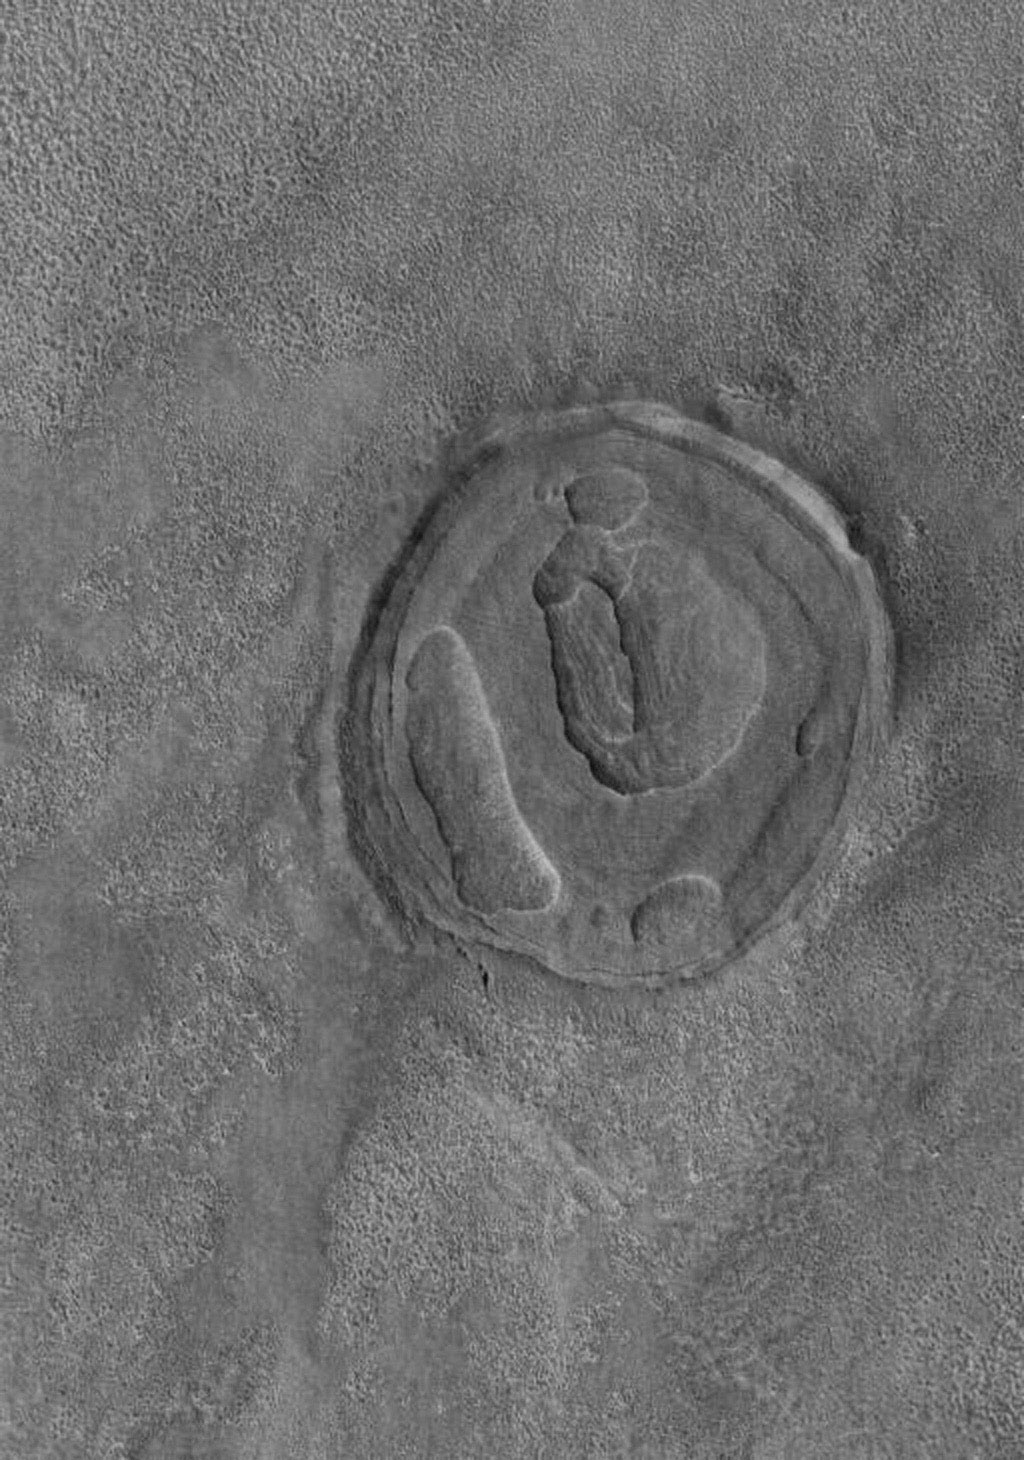 NASA's Mars Global Surveyor shows a circular feature on the martian northern plains. It was once a crater formed by meteoritic impact. It was completely filled and buried by and within layered material.